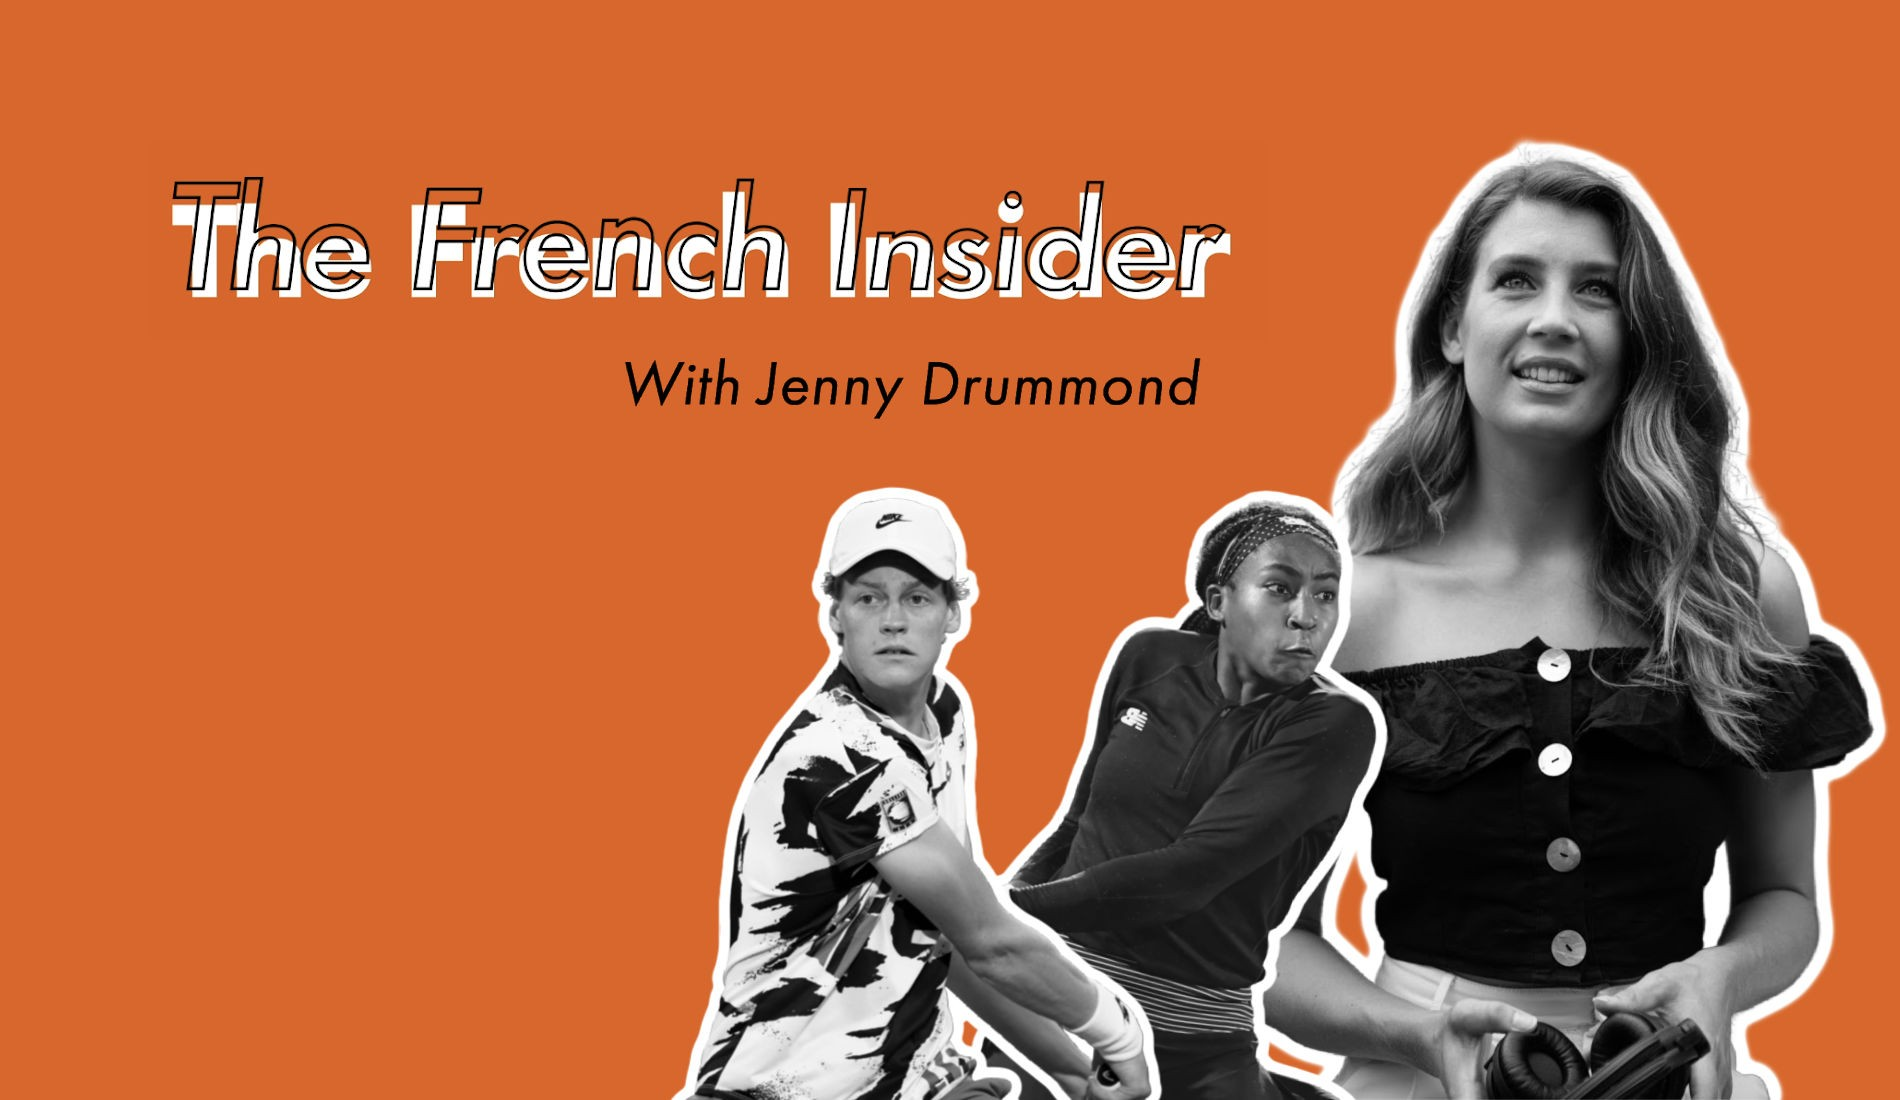 The French Insider #1